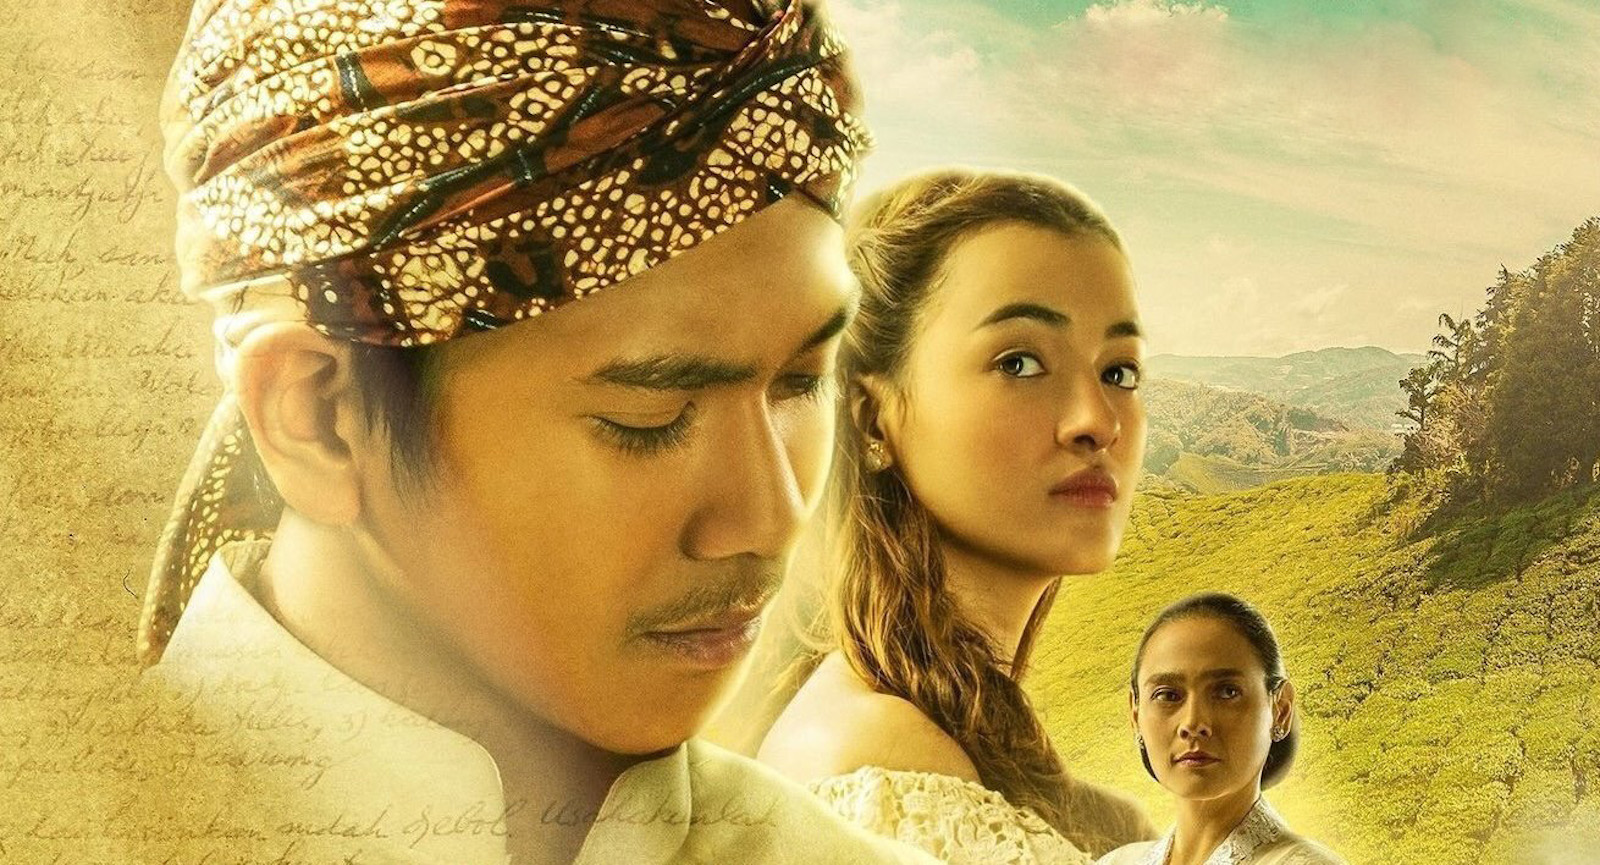 bumi manusia review